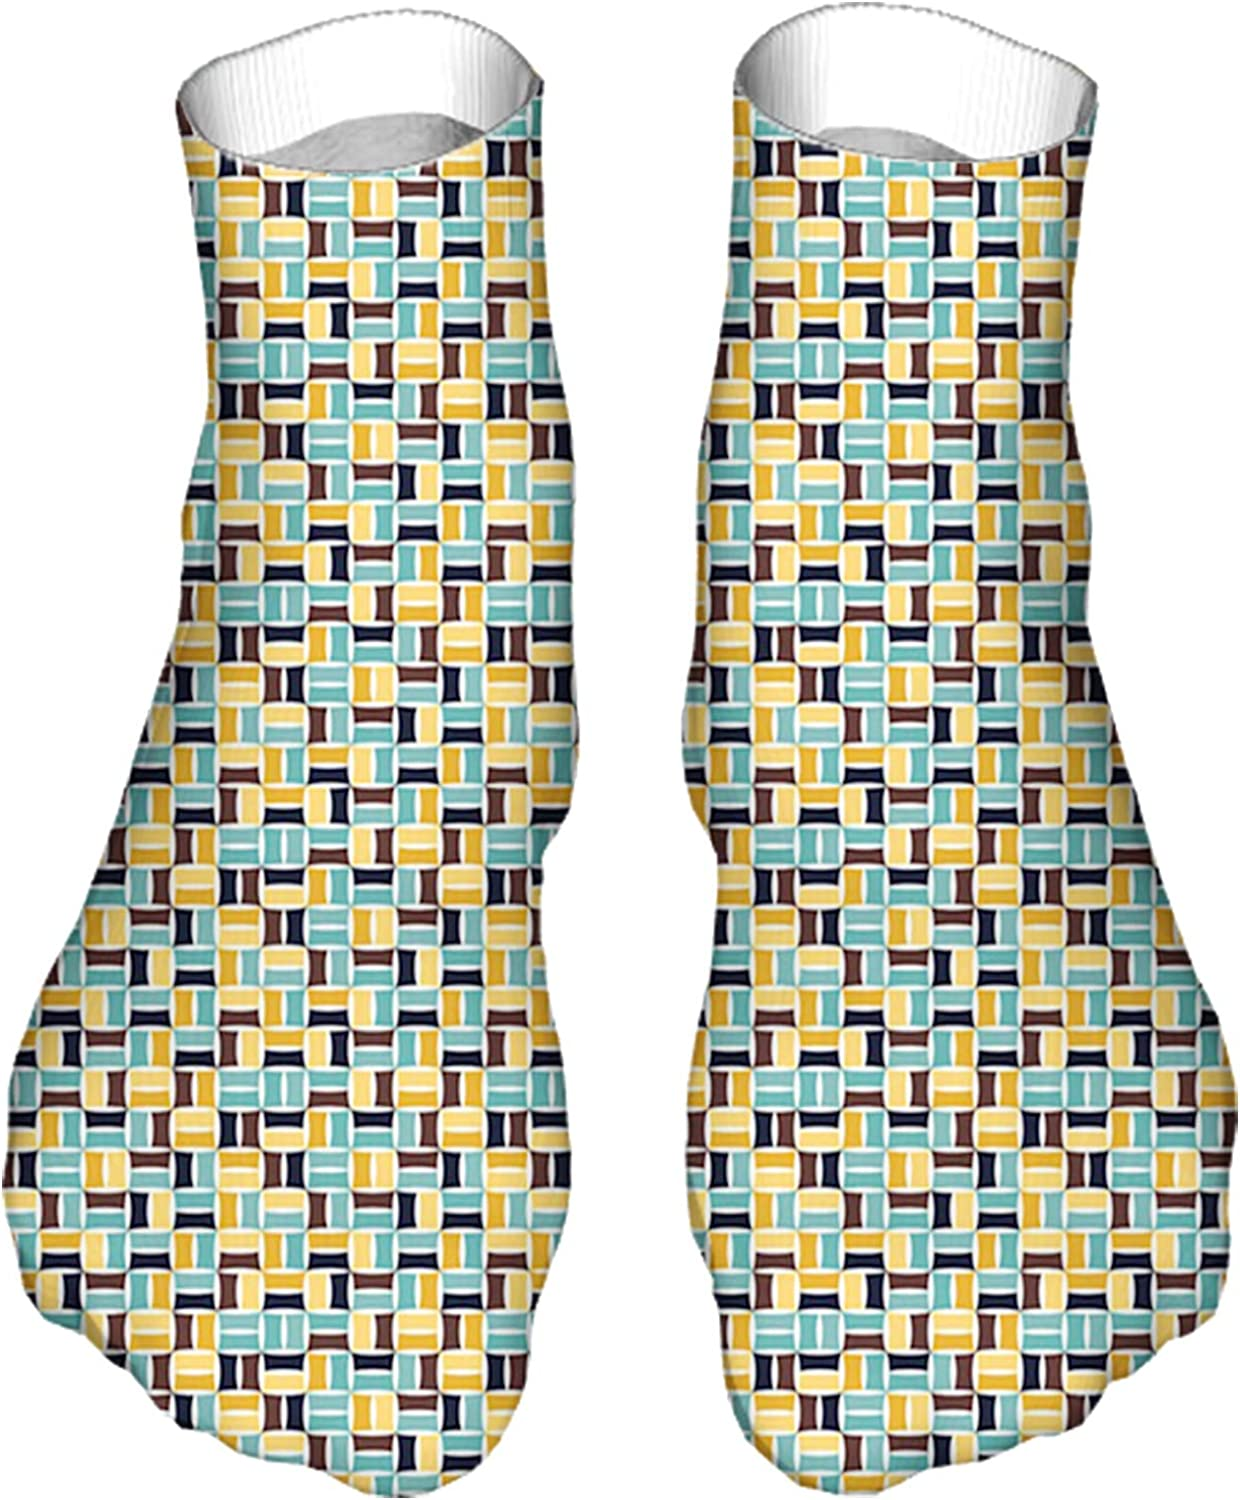 Men's and Women's Fun Socks Printed Cool Novelty Funny Socks,Contemporary and Retro Style Combined Geometrical Fashionab